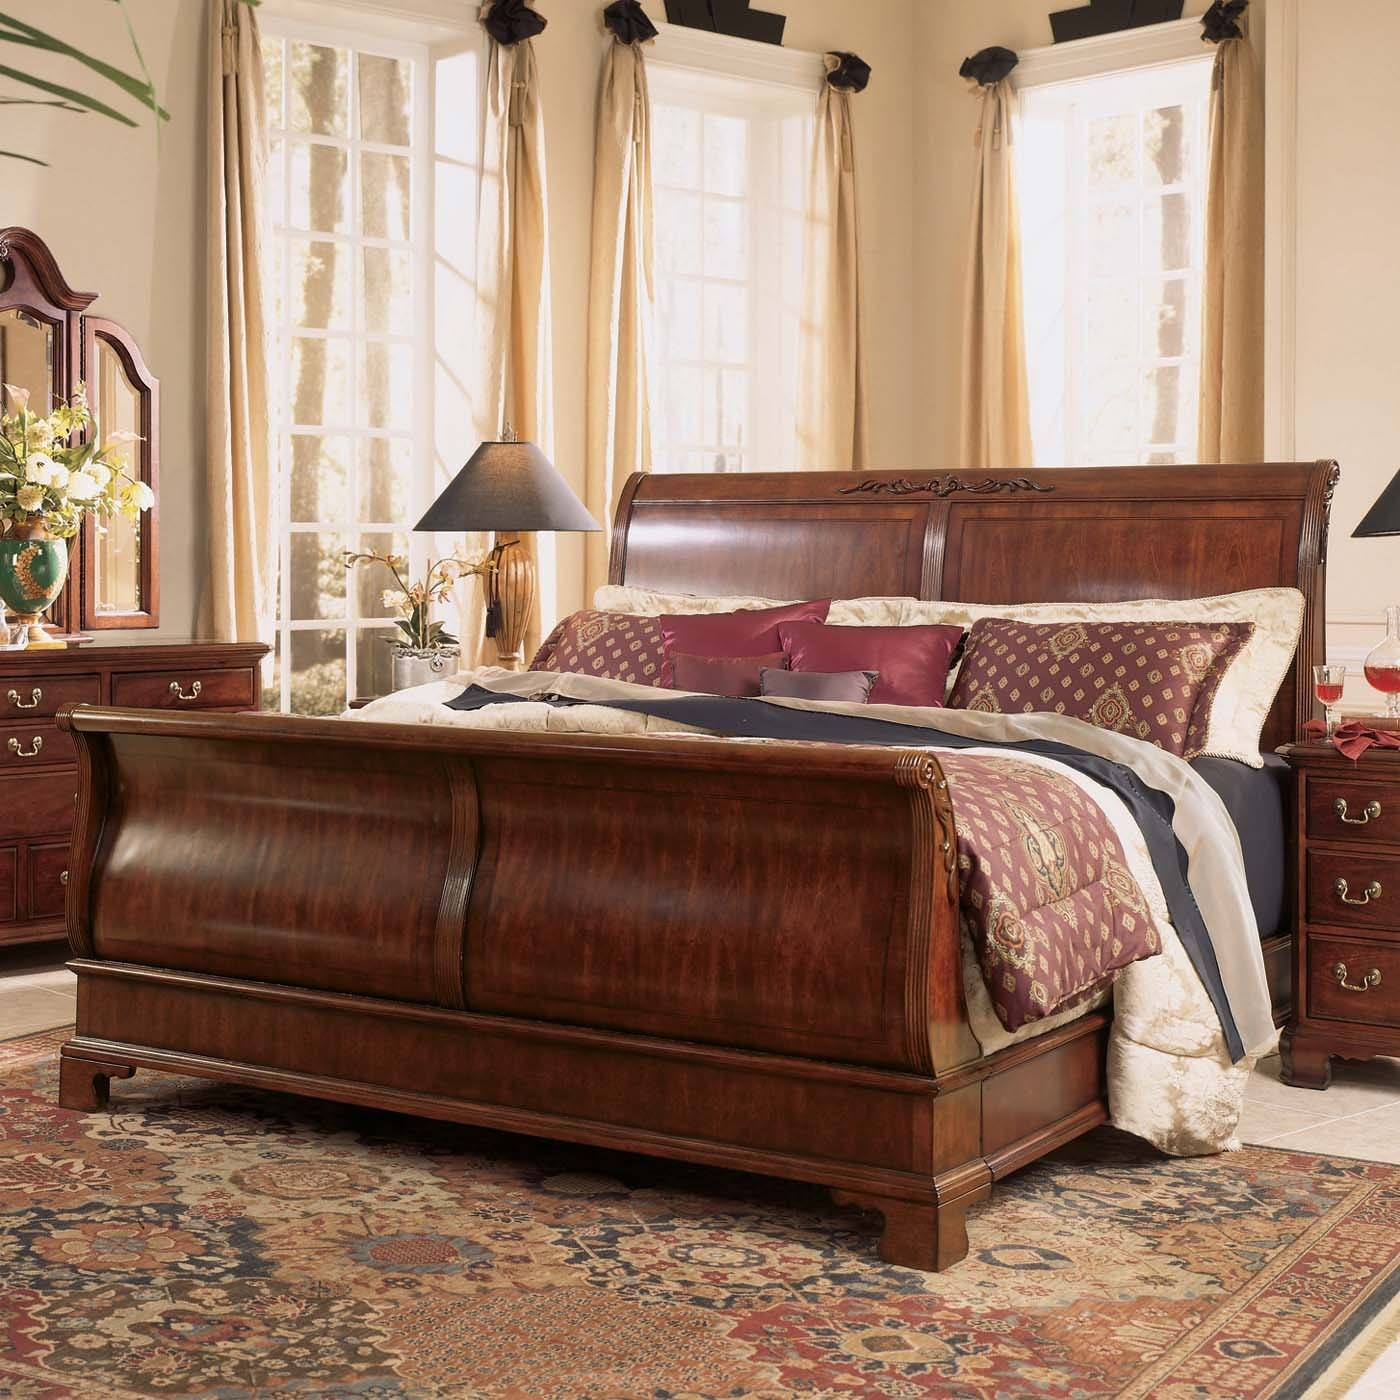 Alluring headboars king sleigh bed with royal duvet cover and luxury sheets also unique area rug above laminate flooring ideas